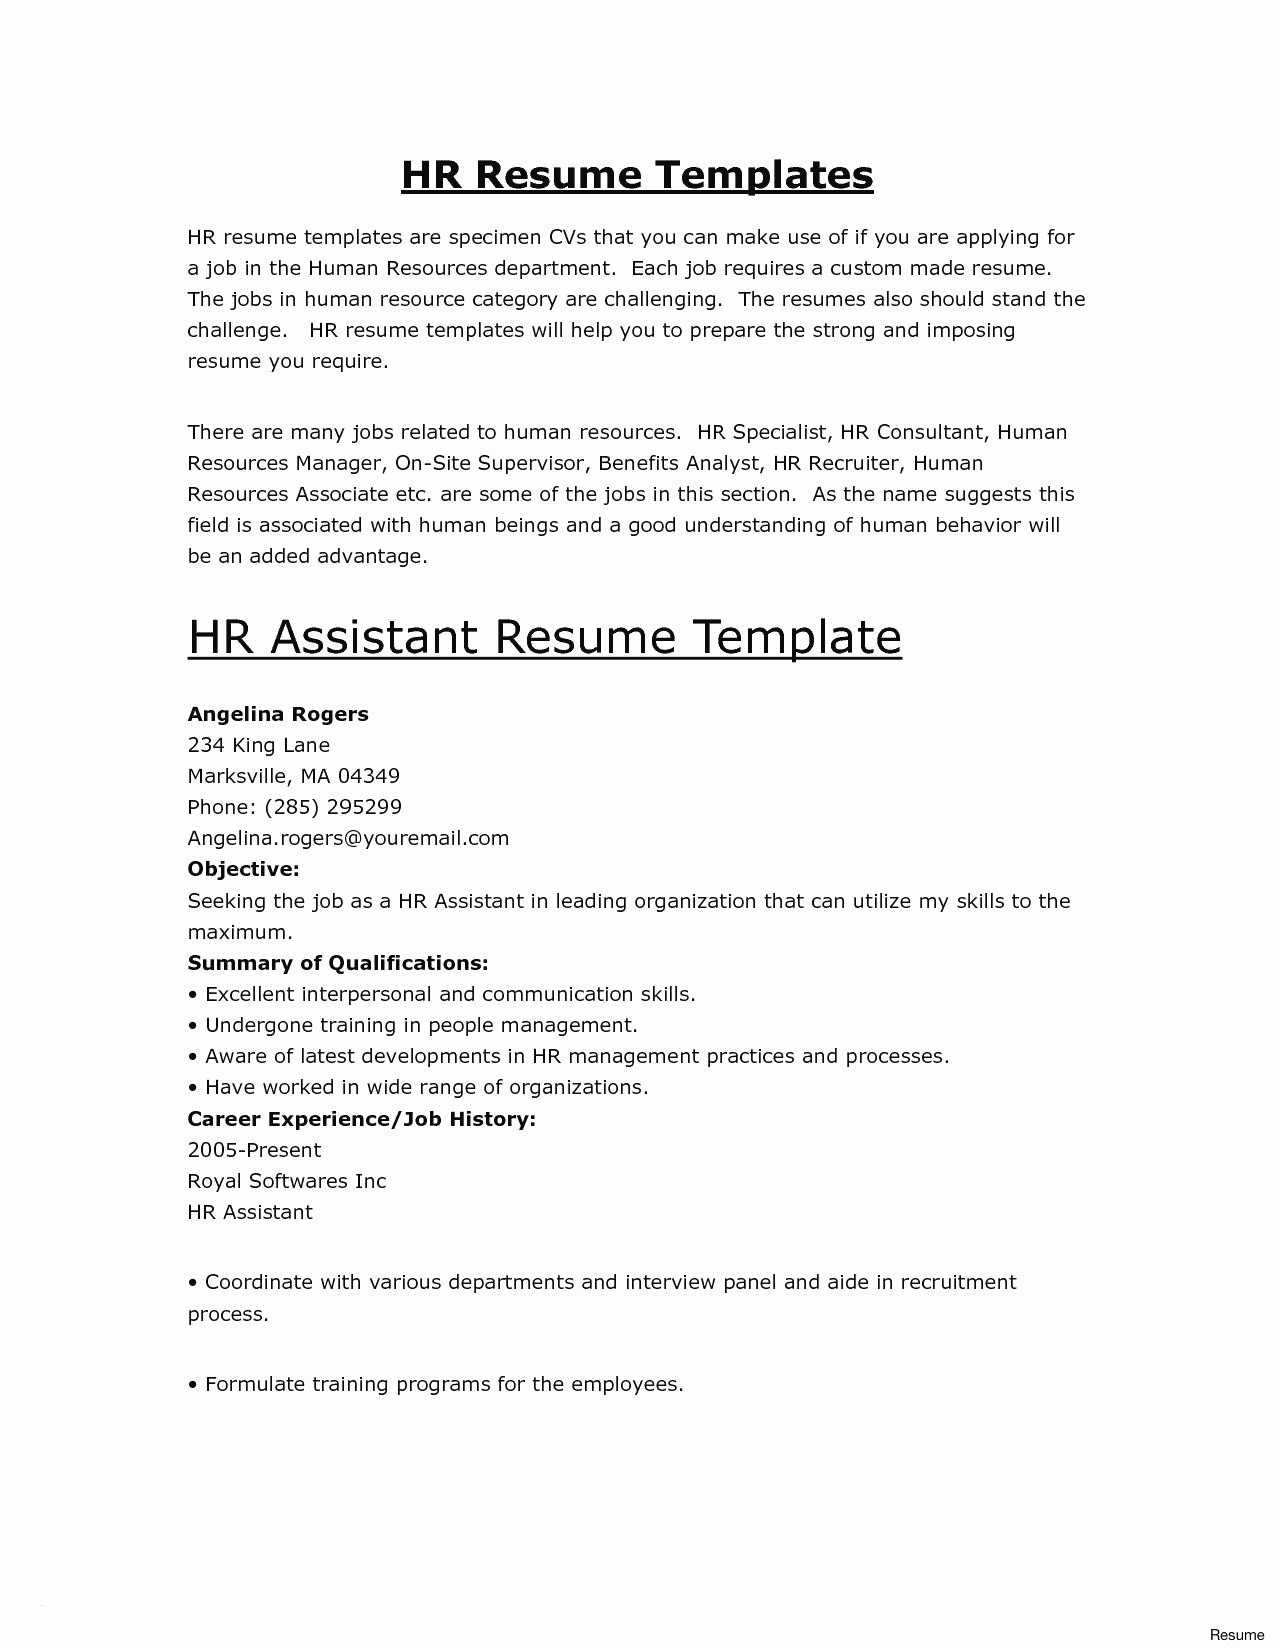 Resumes Craigslist - Resumes that Work Lovely What Makes A Good Resume Reference Best